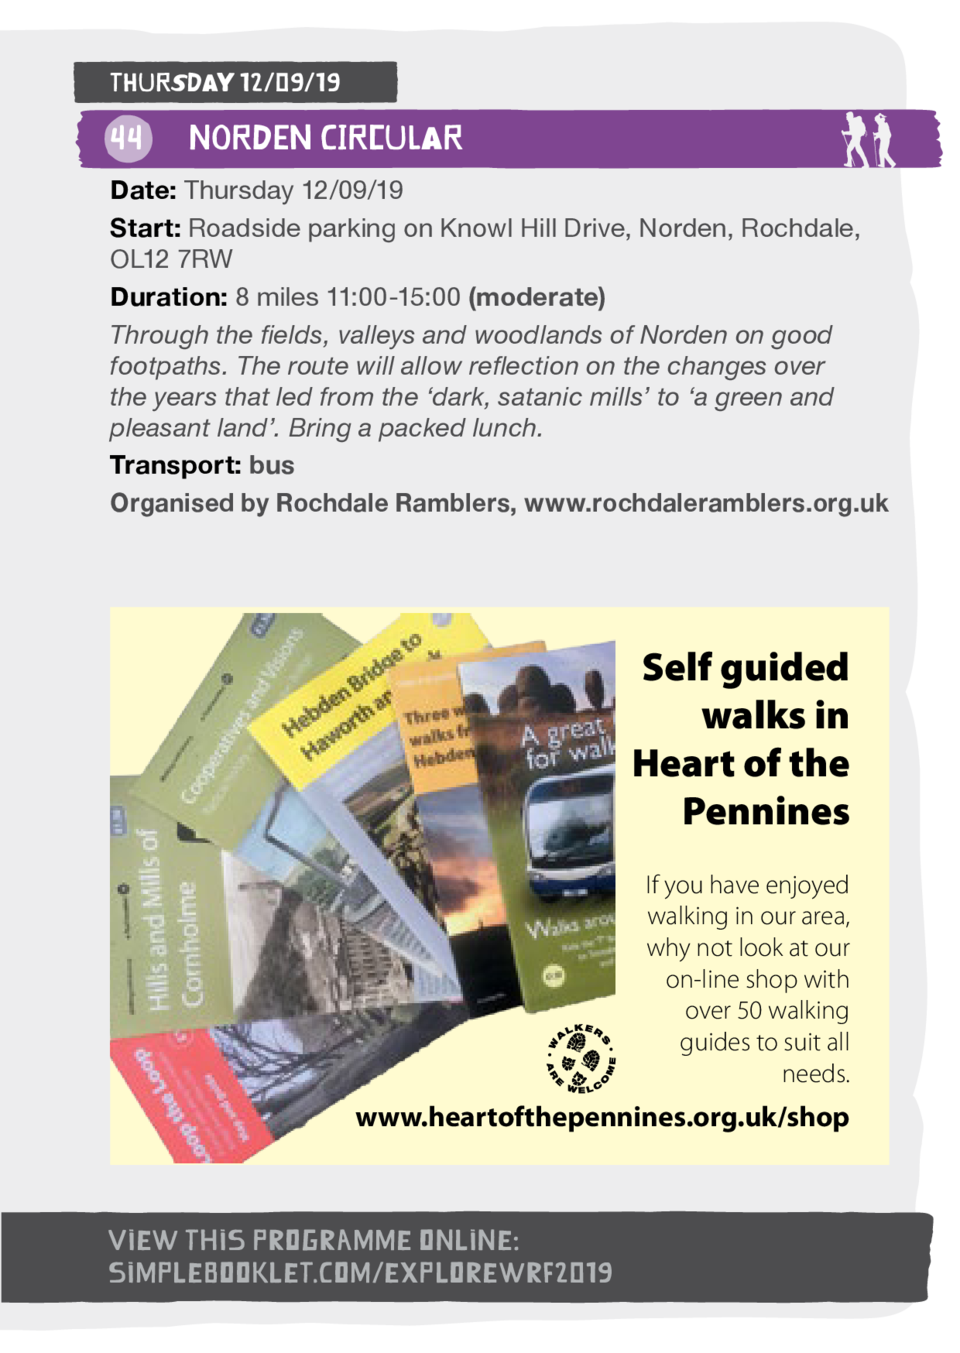 Thursday 12 09 19  44  Norden Circular Date  Thursday 12 09 19 Start  Roadside parking on Knowl Hill Drive, Norden, Rochda...